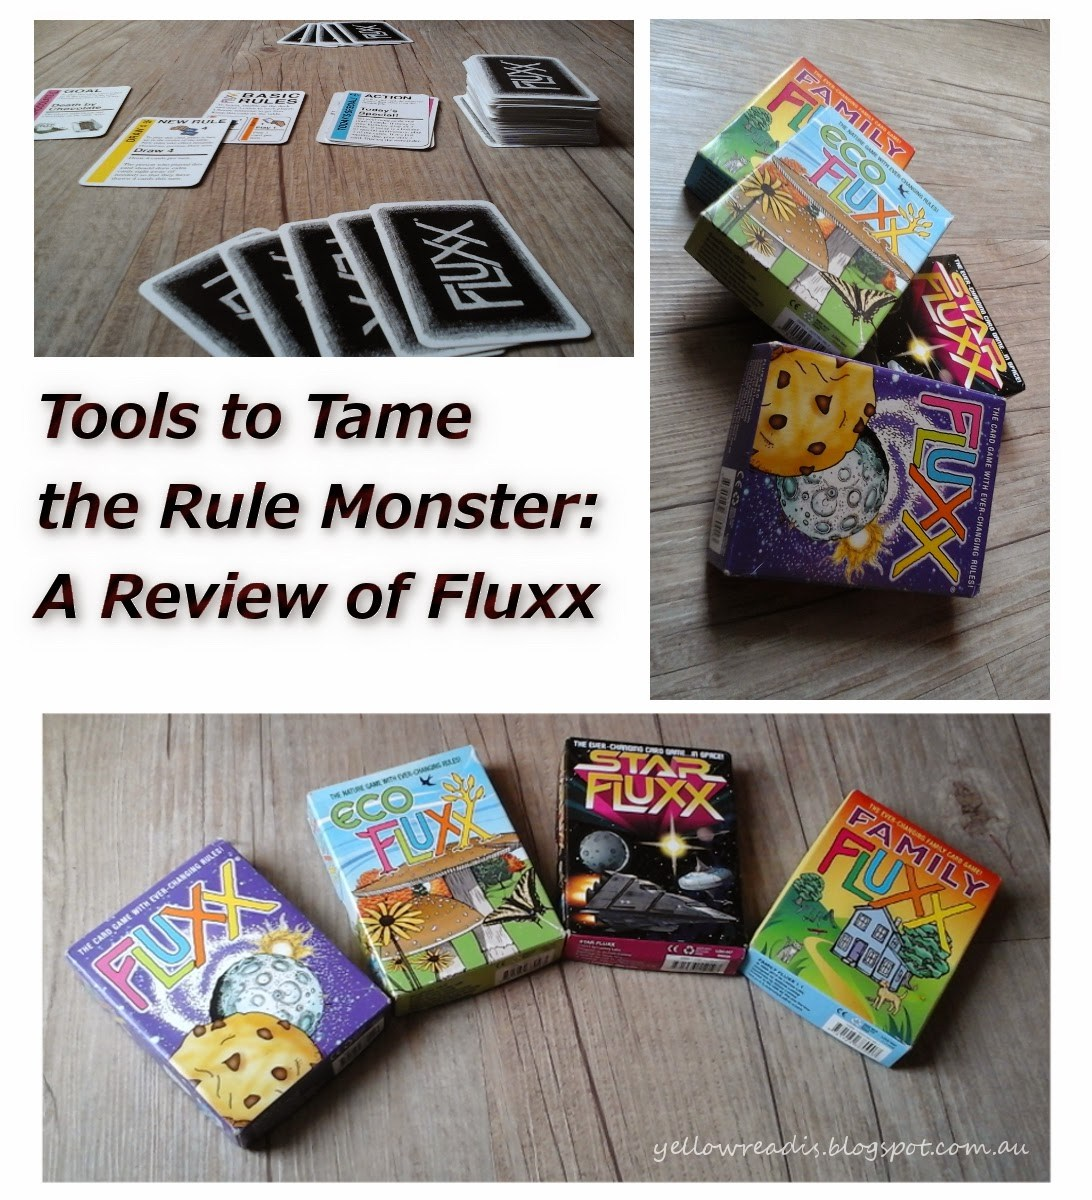 Tools to Tame the Rule Monster: A Review of Fluxx, yellowreadis.com IMages: A game of Fluxx being played, boxes of different versions of Fluxx